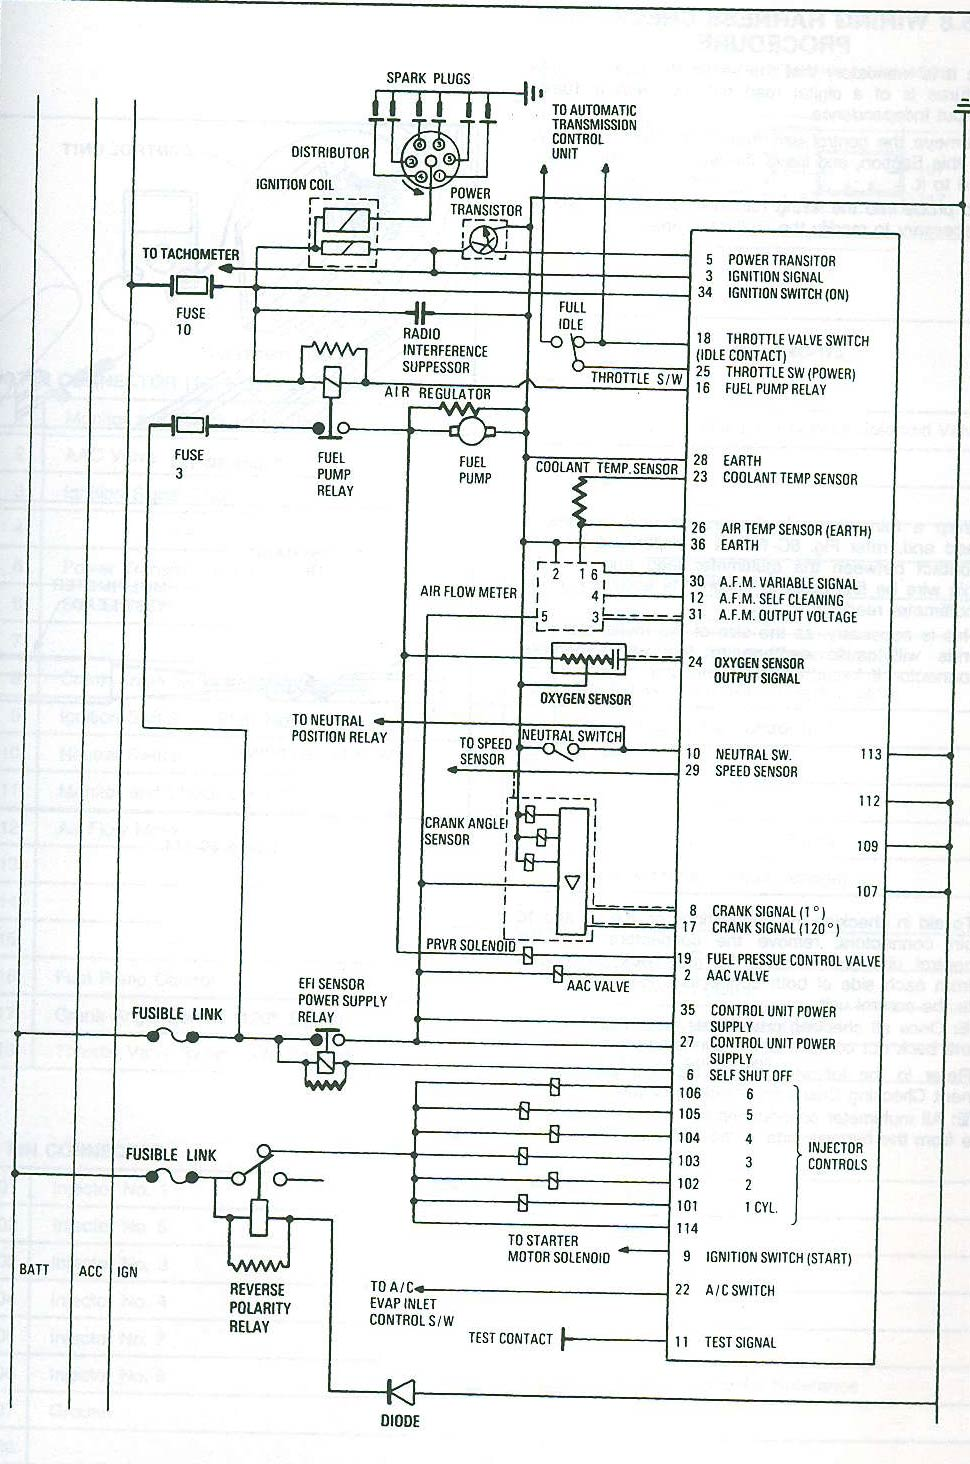 ecuwiring vl commodore dash wiring diagram efcaviation com 280zx alternator wiring diagram at pacquiaovsvargaslive.co